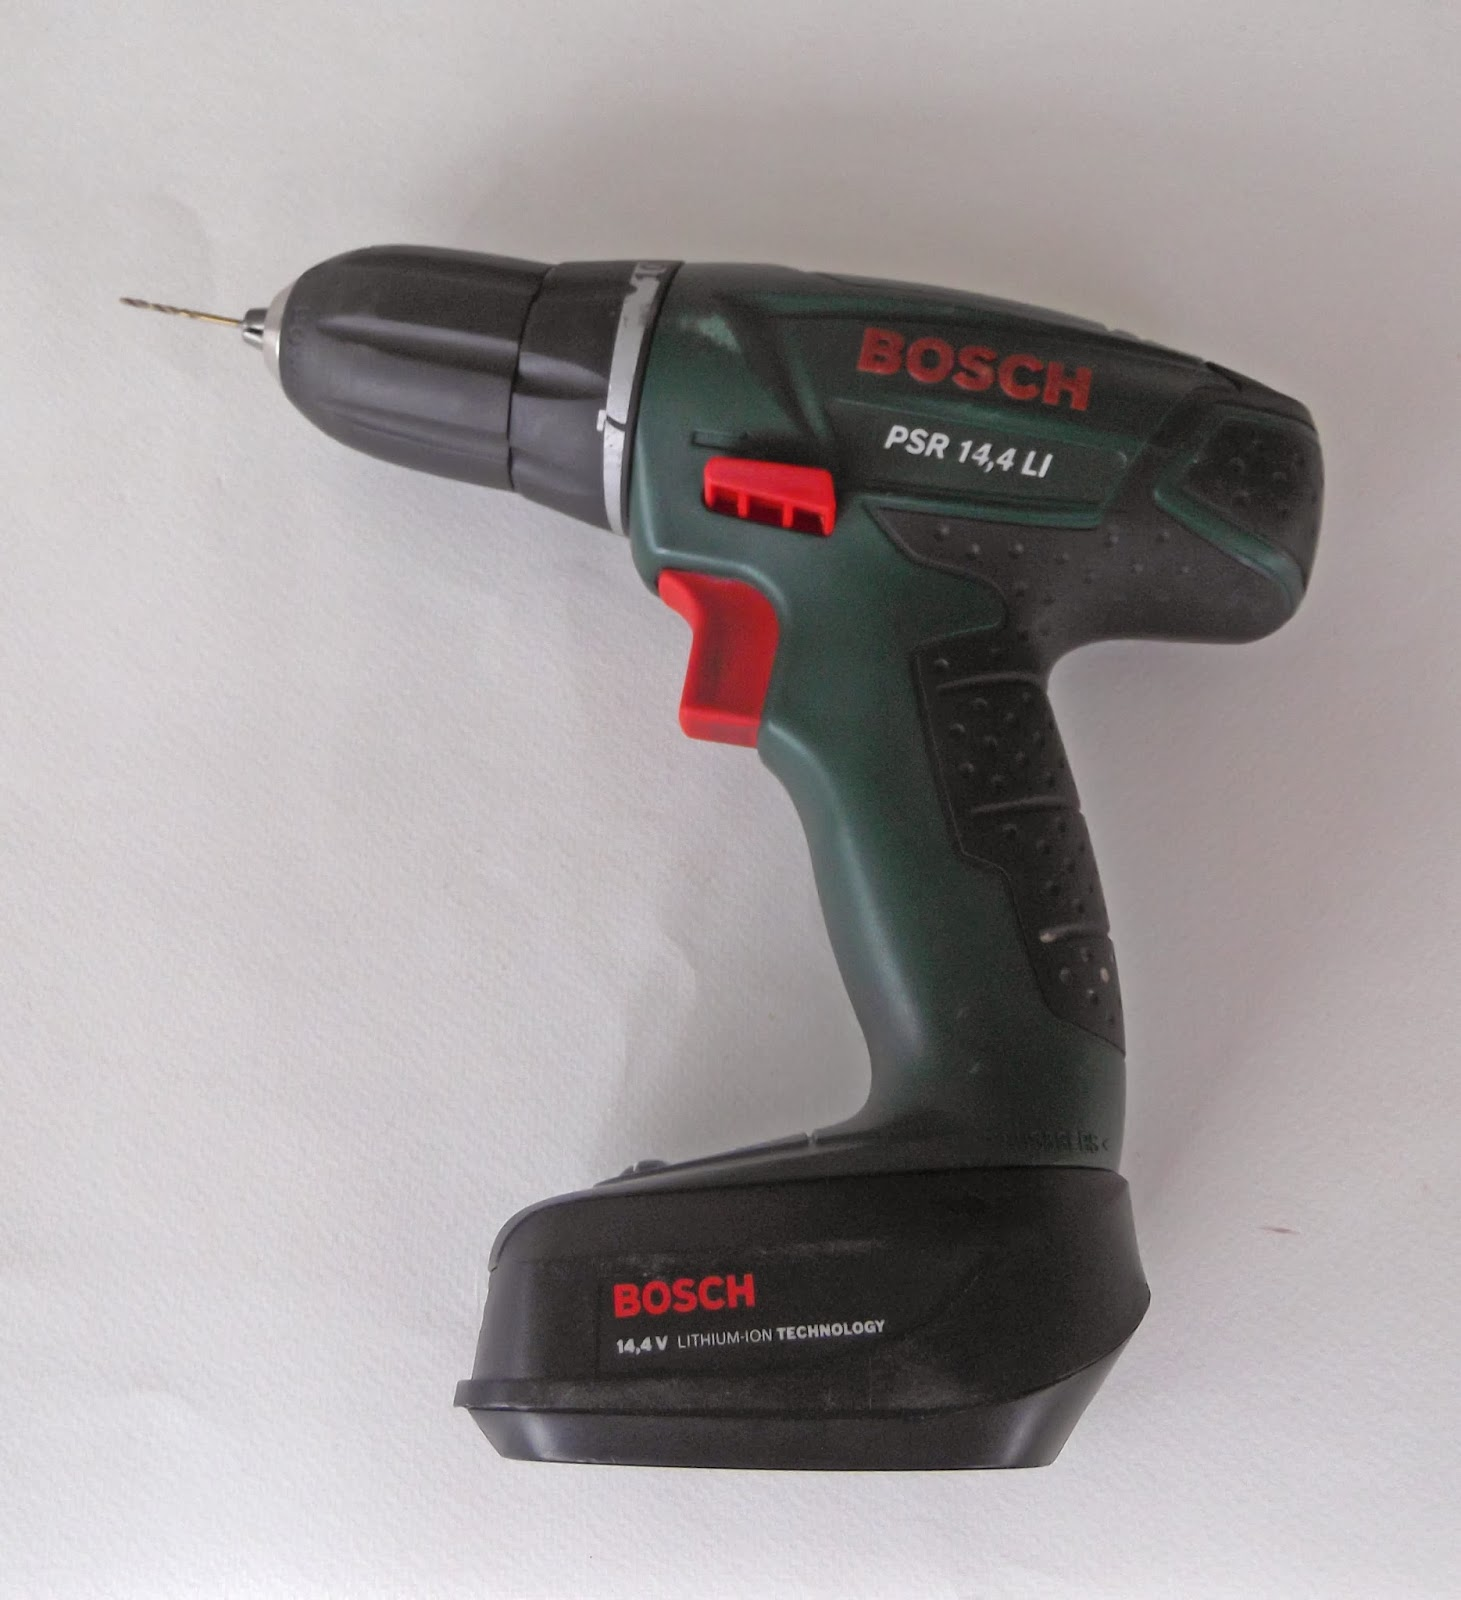 Power drill, electric drill, bosch drill,